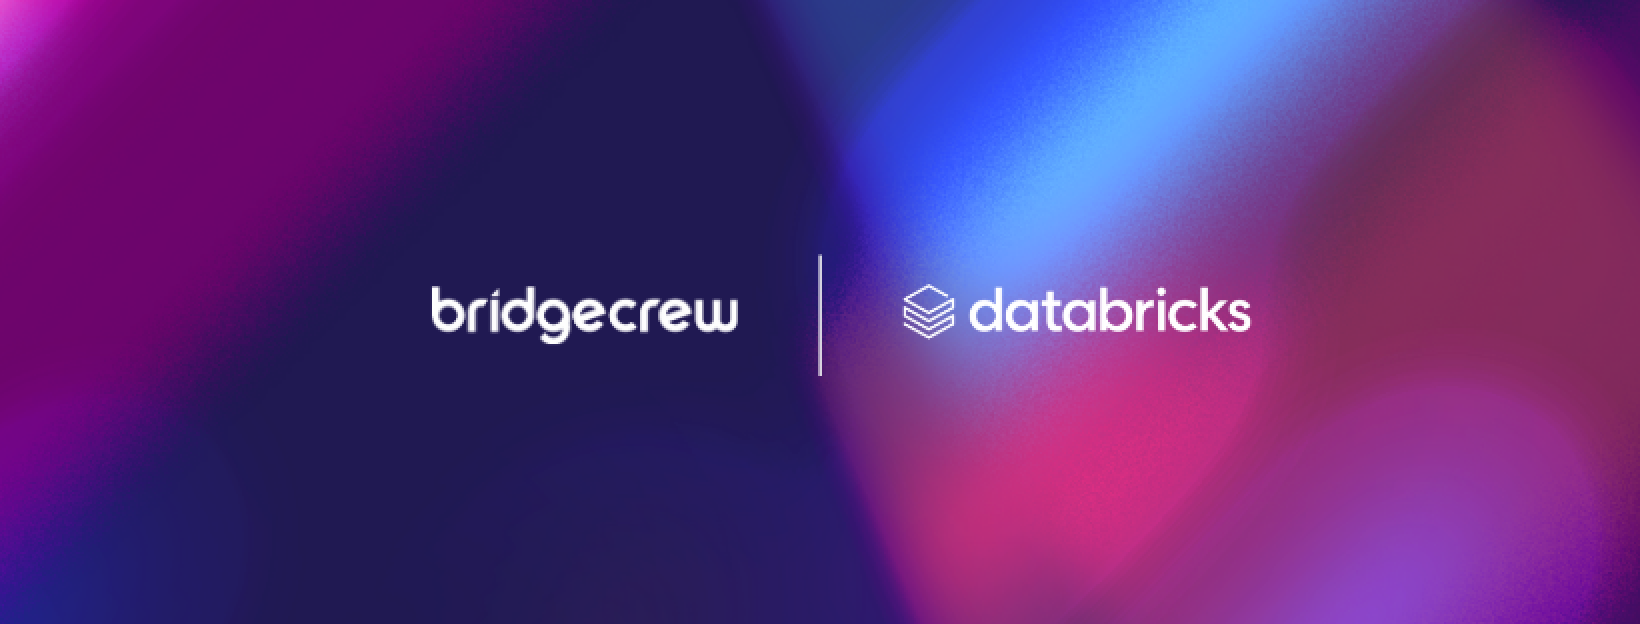 Databricks IAM right-sizing and building security foundation with Bridgecrew